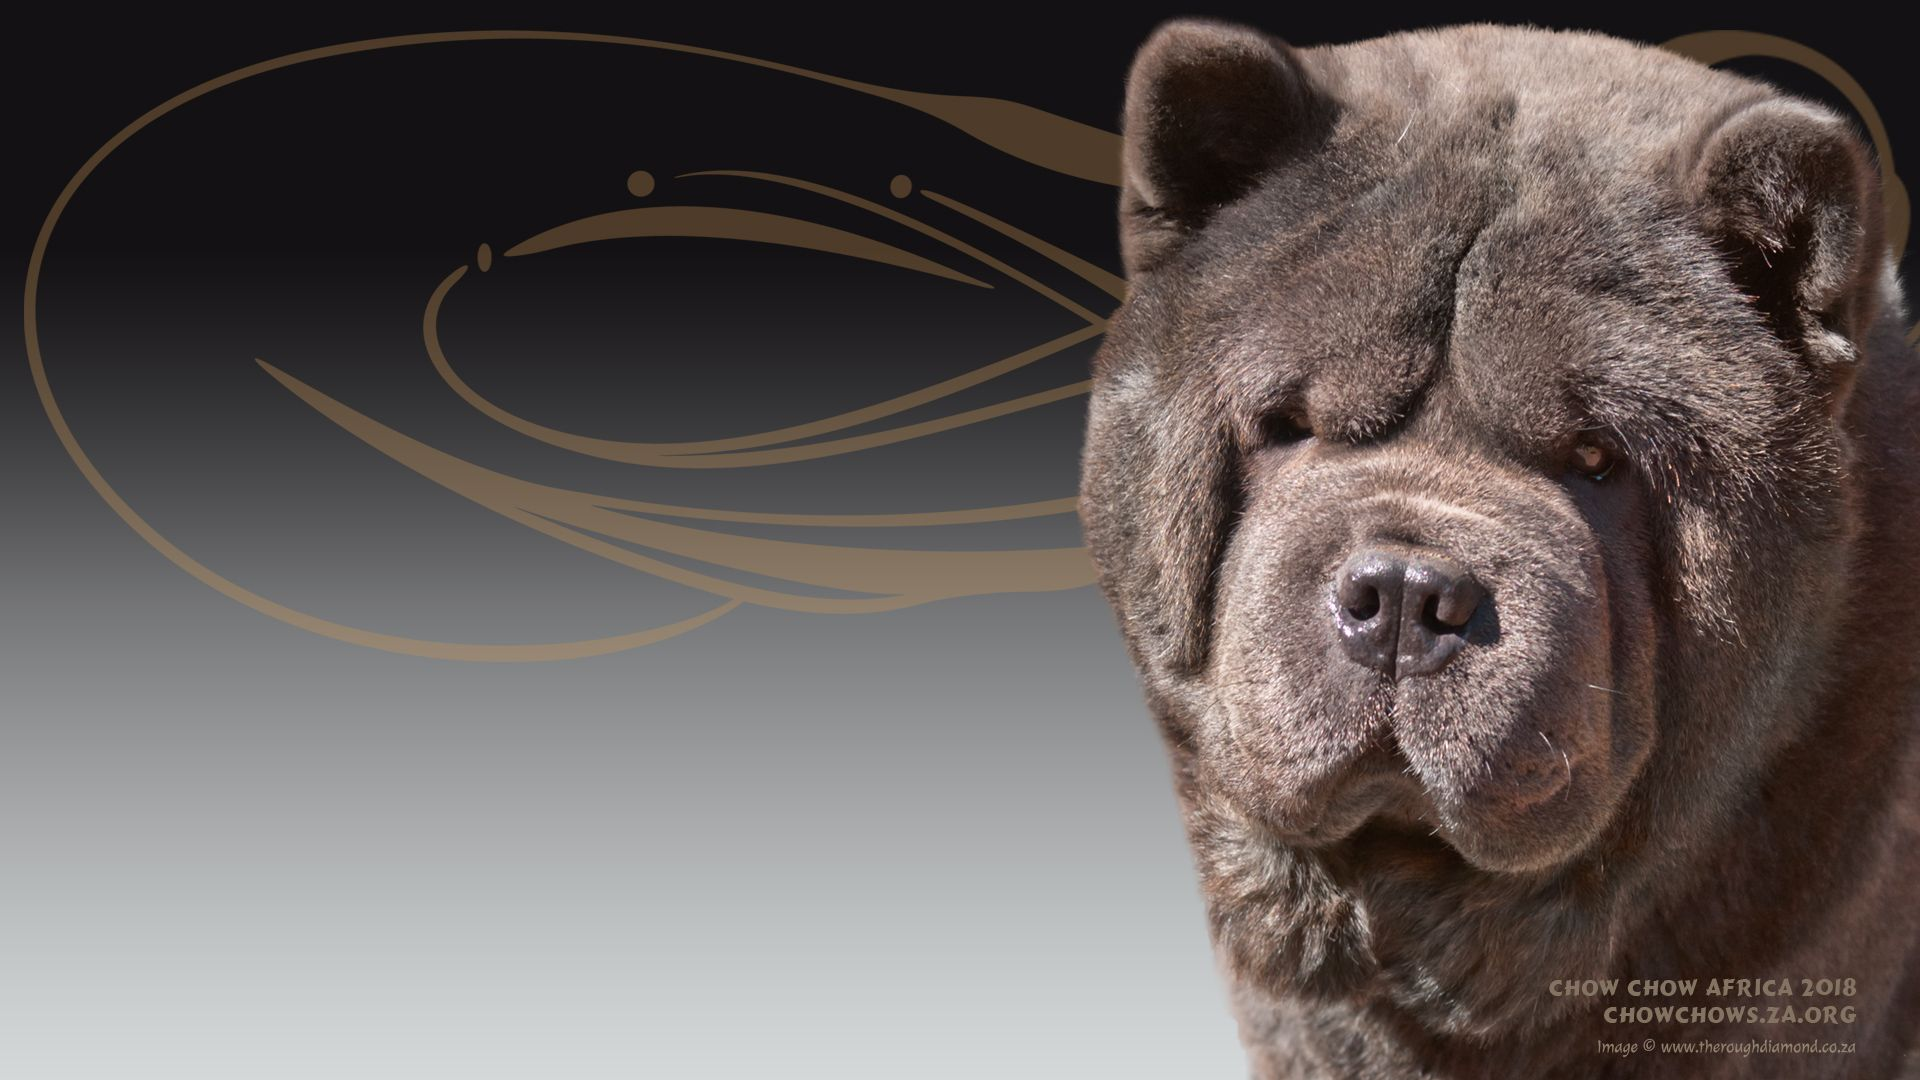 The Wallpapers Of Chow Chow